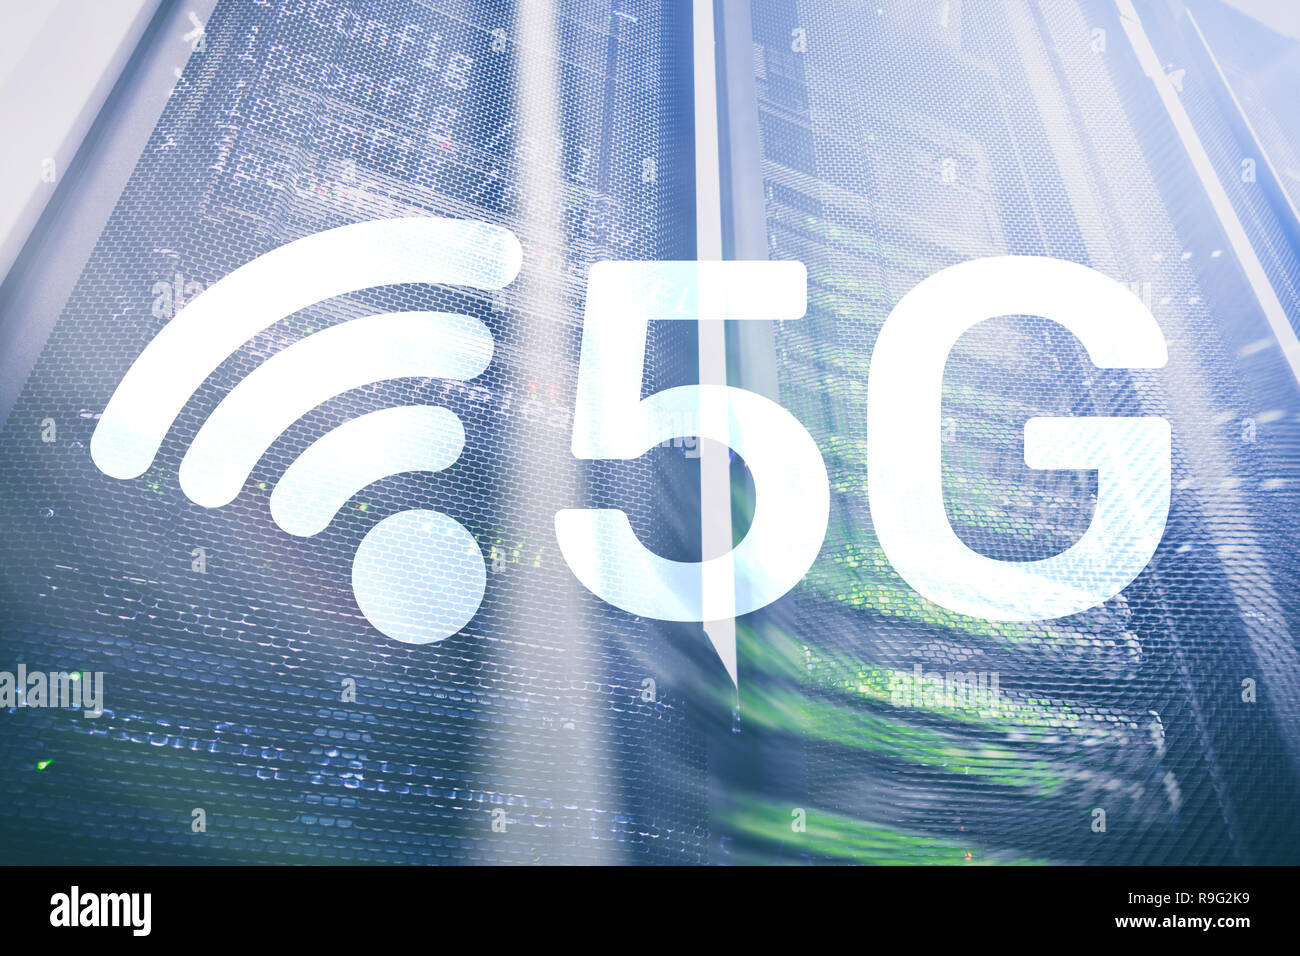 5G Fast Wireless internet connection Communication Mobile Technology concept. Stock Photo